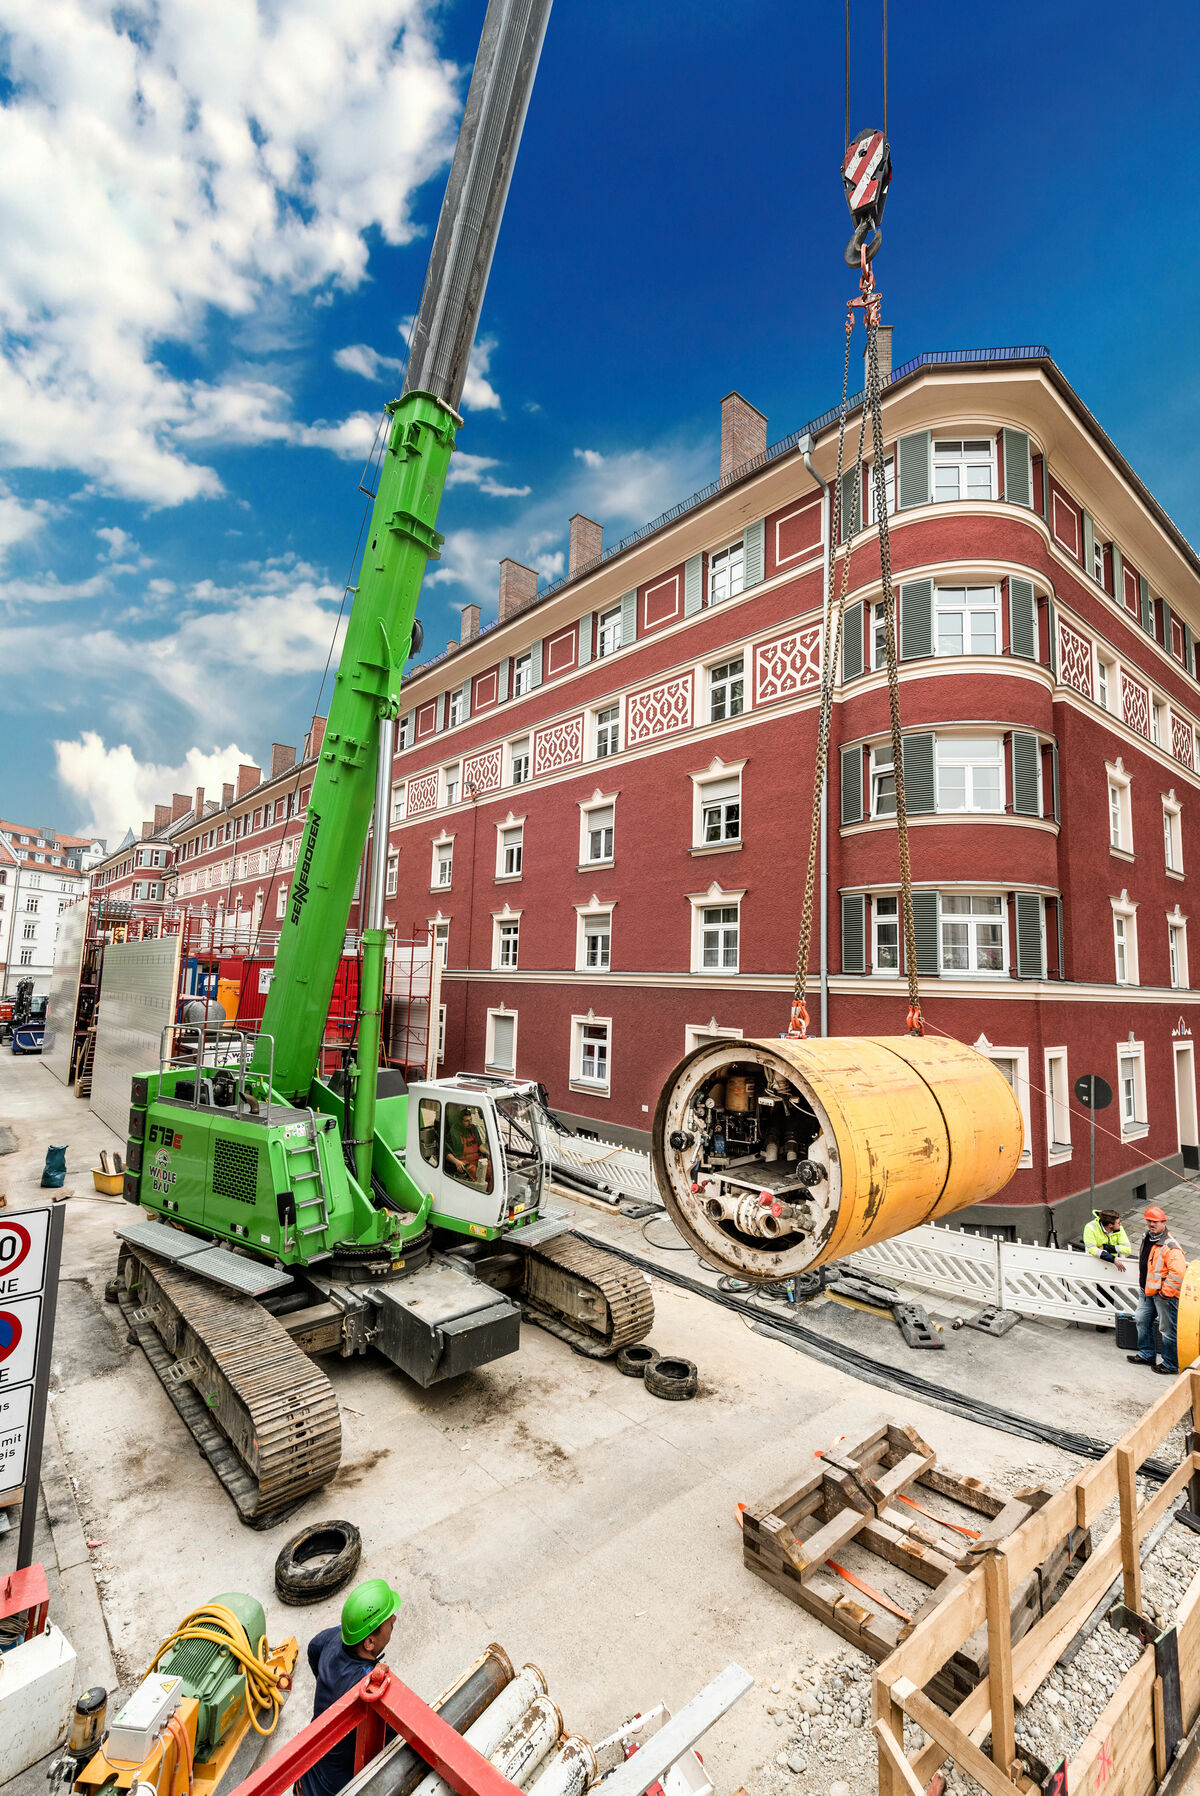 SENNEBOGEN 673 E crawler telescopic crane for supporting underground pipe jacking work